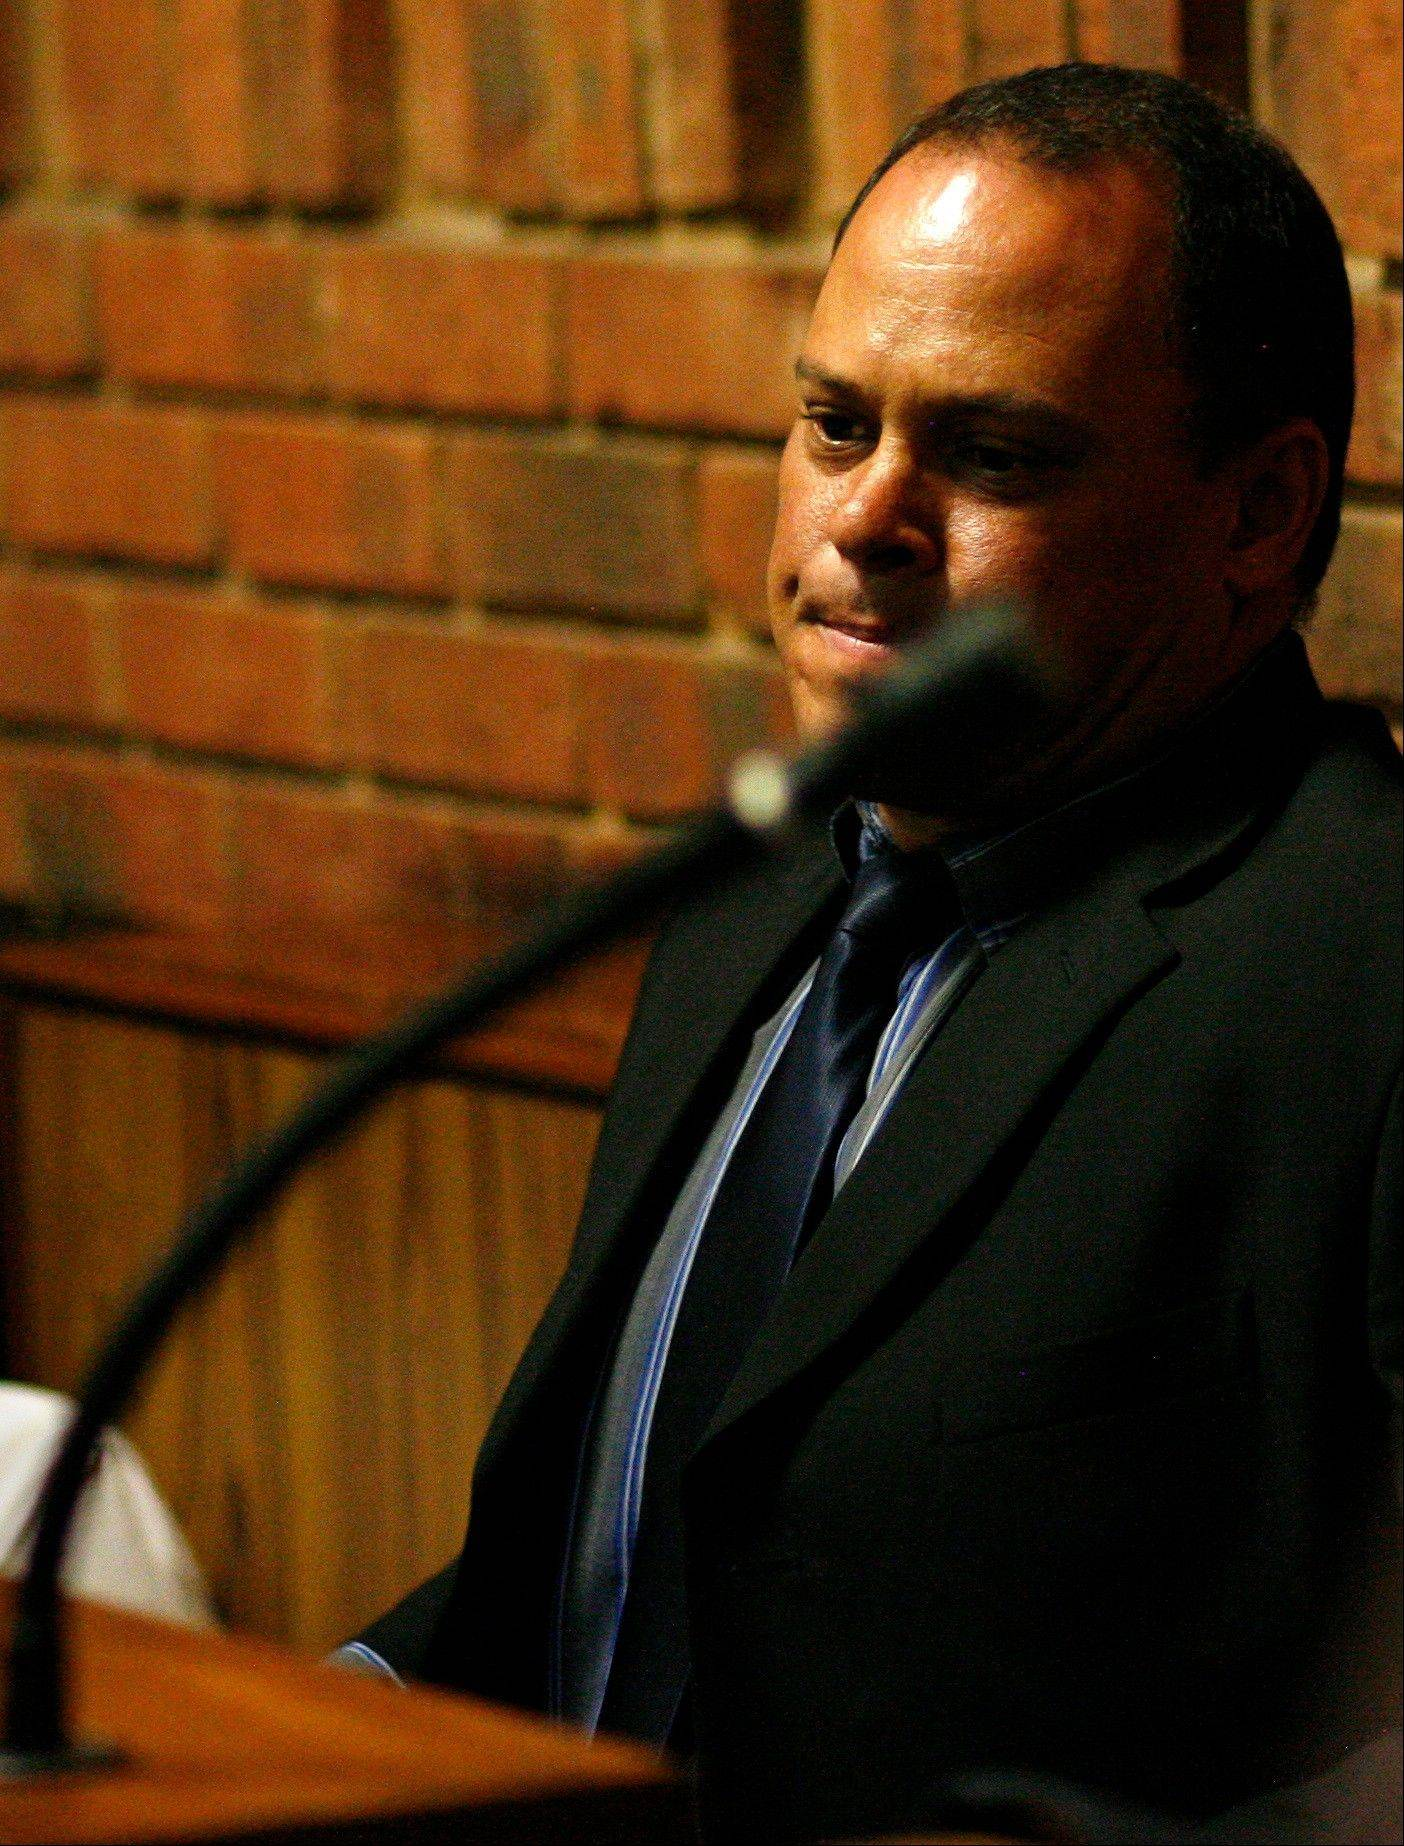 Investigating officer Hilton Botha has been replaced as the lead investigator in the Oscar Pistorius murder case.